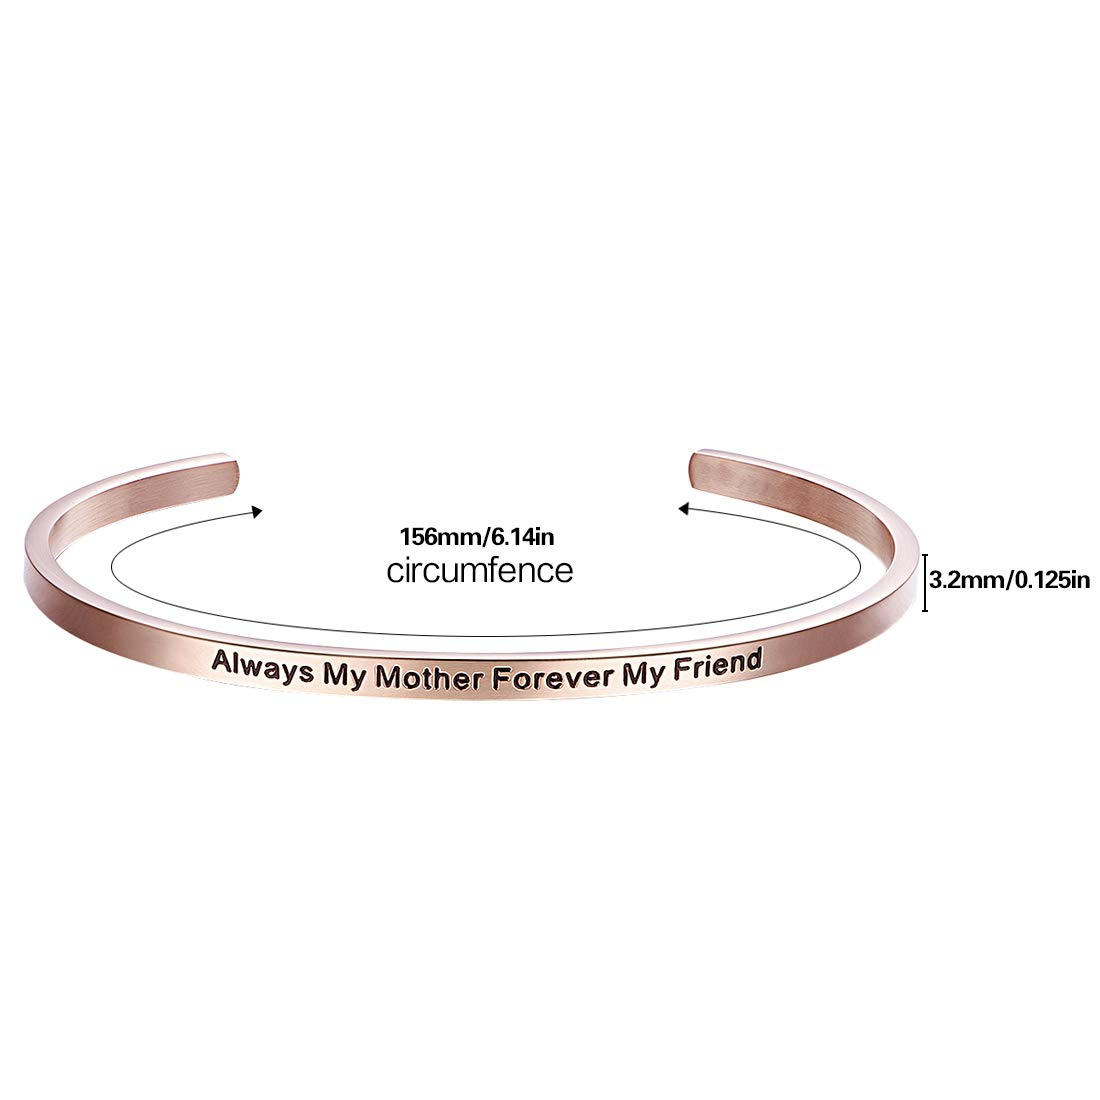 FANCYCD The Future Belongs to Those Who Believe in The Beauty of Their Dreams Adjustable Cuff Bracelet Wristband Bangle